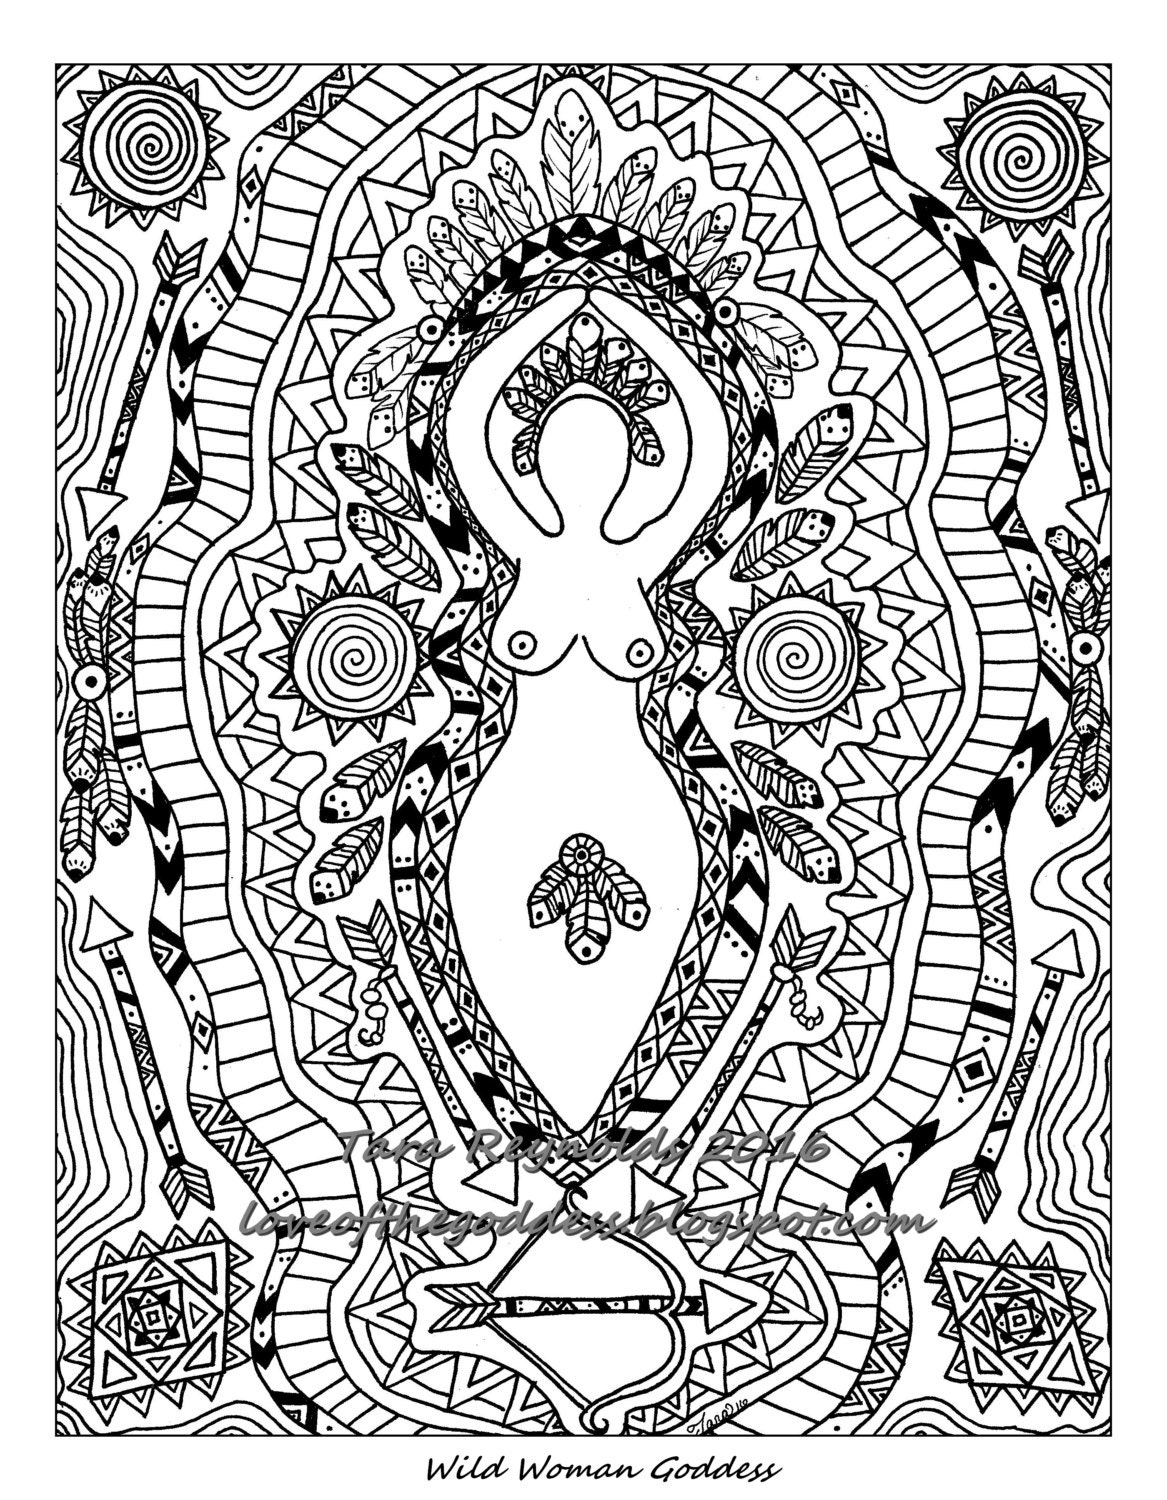 Goddess Art Coloring Pages for Adults Goddess Coloring Page | Etsy